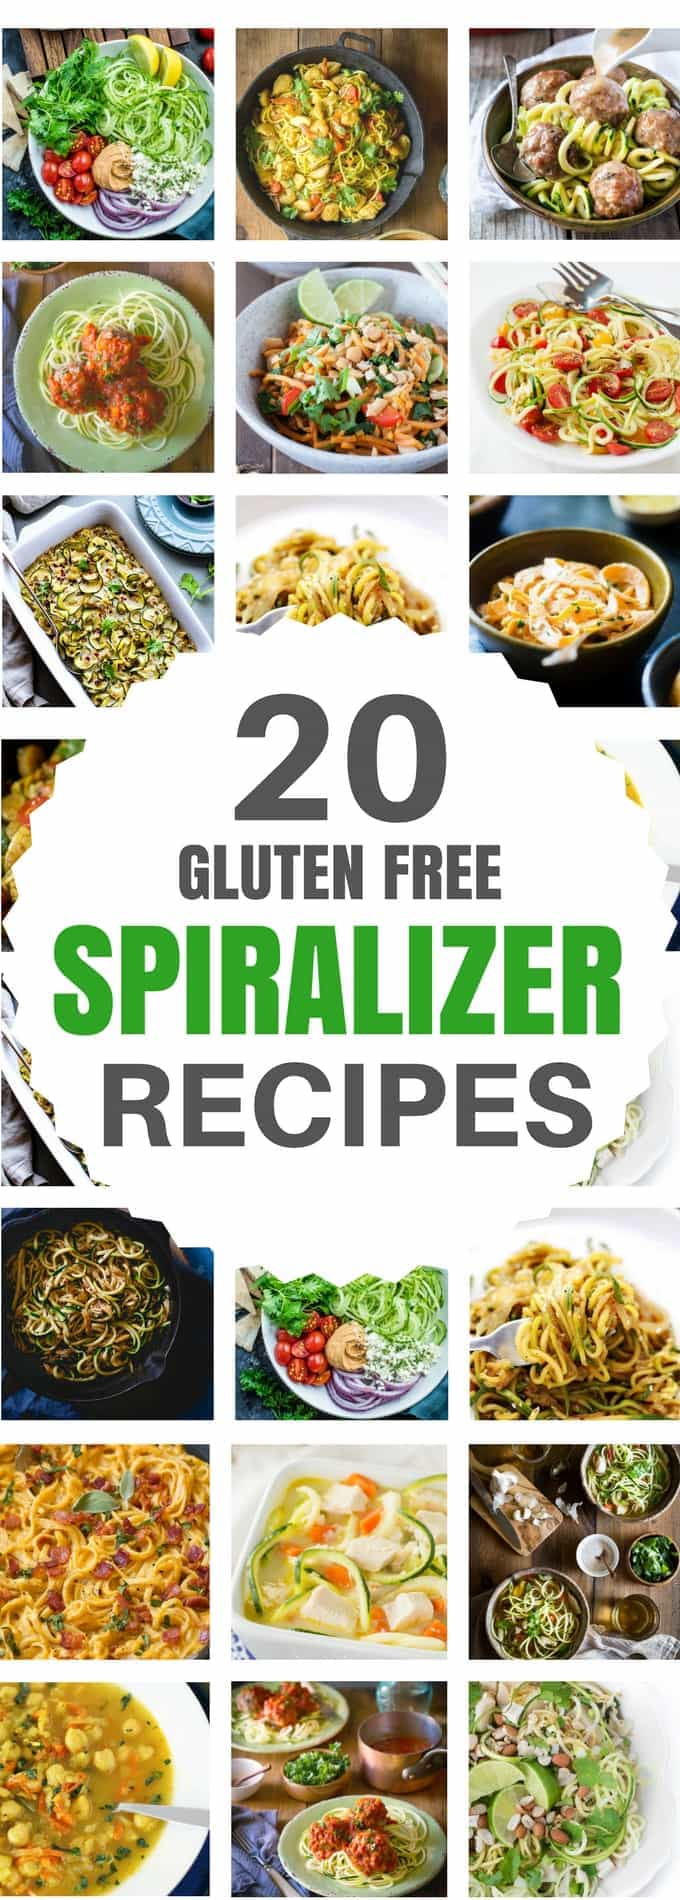 A great collection of healthy gluten free spiralizer dinner recipes you MUST TRY! I have spiralizer sweet potato recipes, spiralizer zucchini noodle recipes - also known as zoodles - and more recipes including many paleo, low carb, and whole30 compliant options.